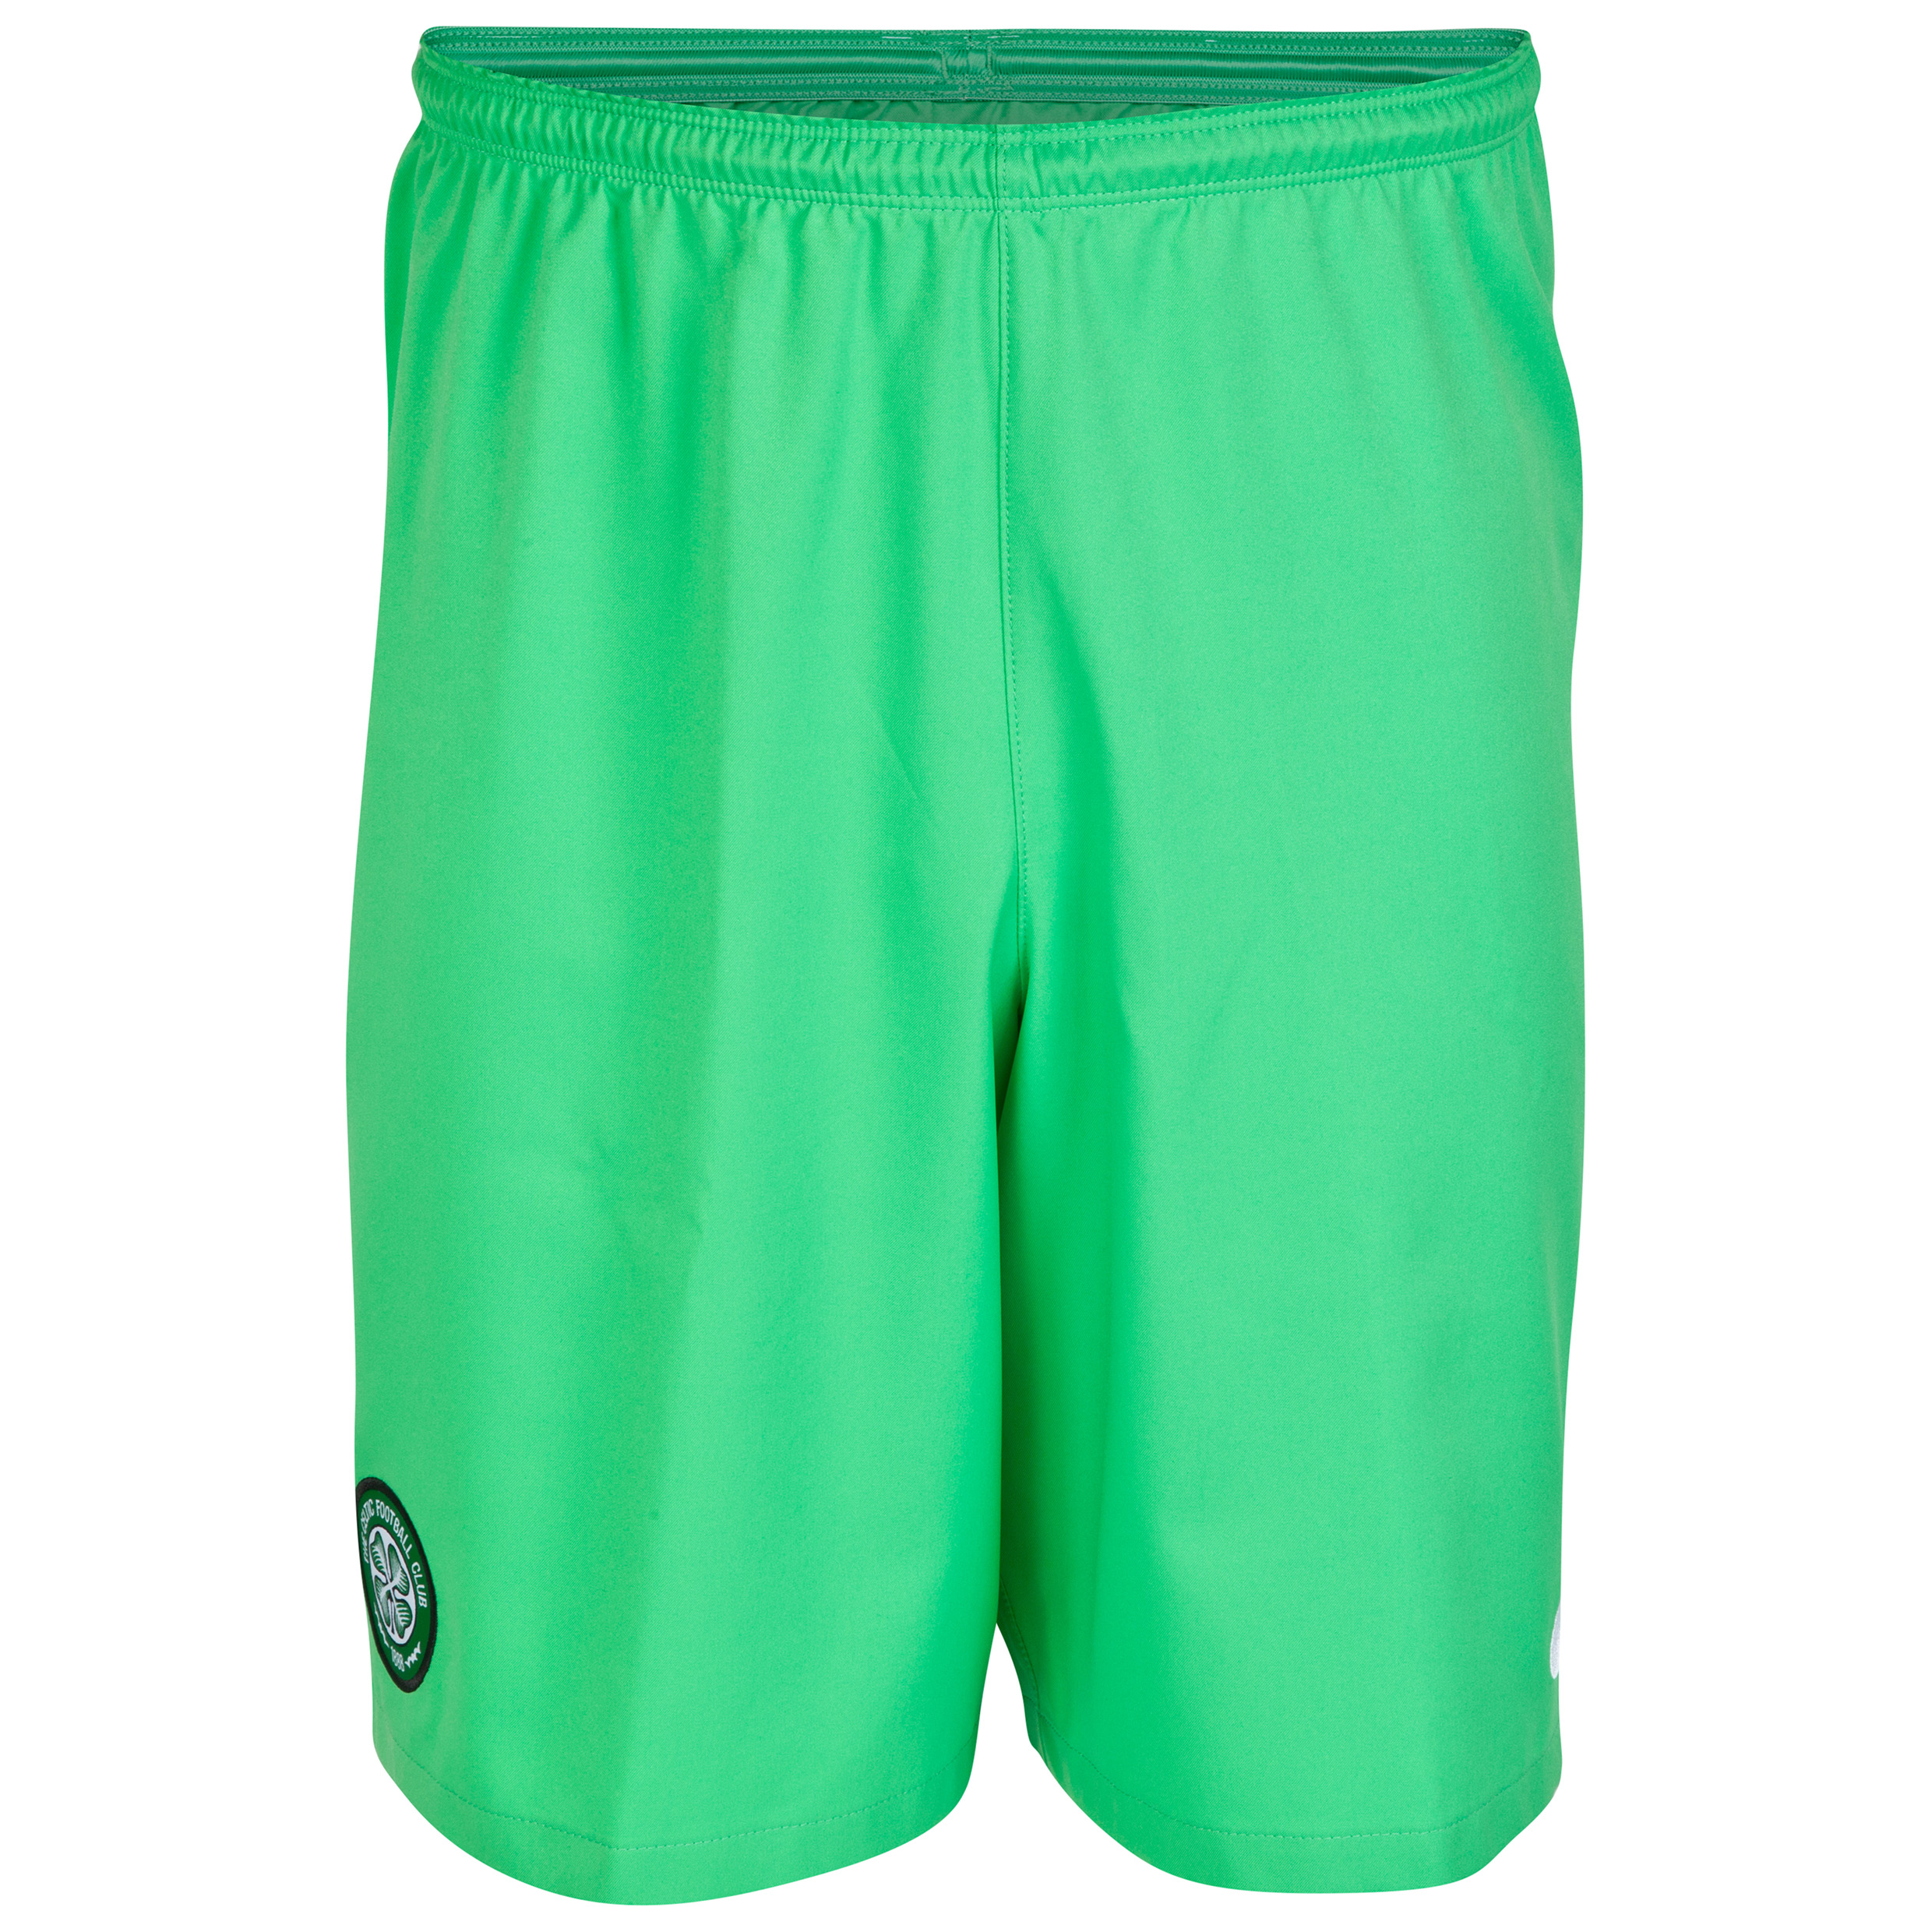 Celtic Change Goalkeeper Shorts 2014/15 Green